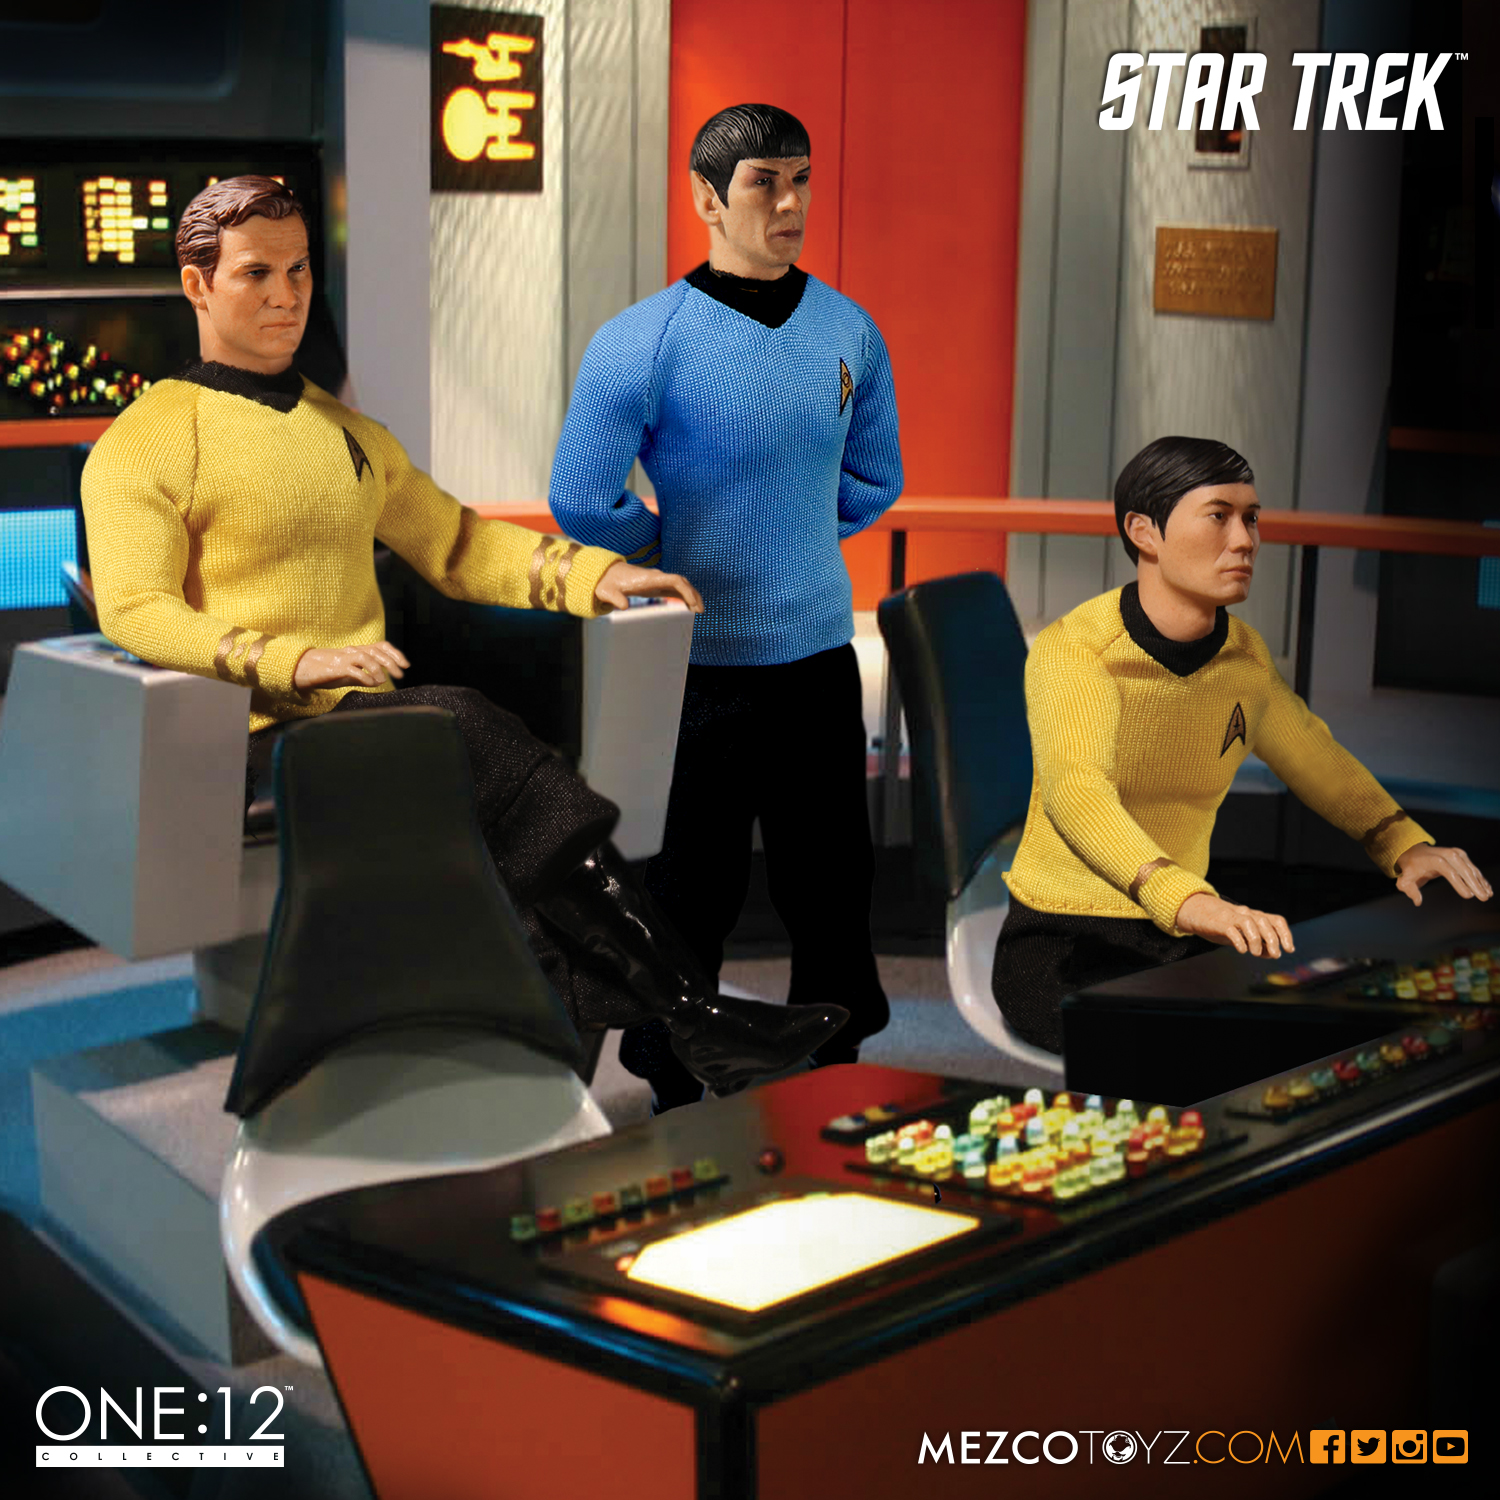 One:12 Collective Star Trek by Marc Witz